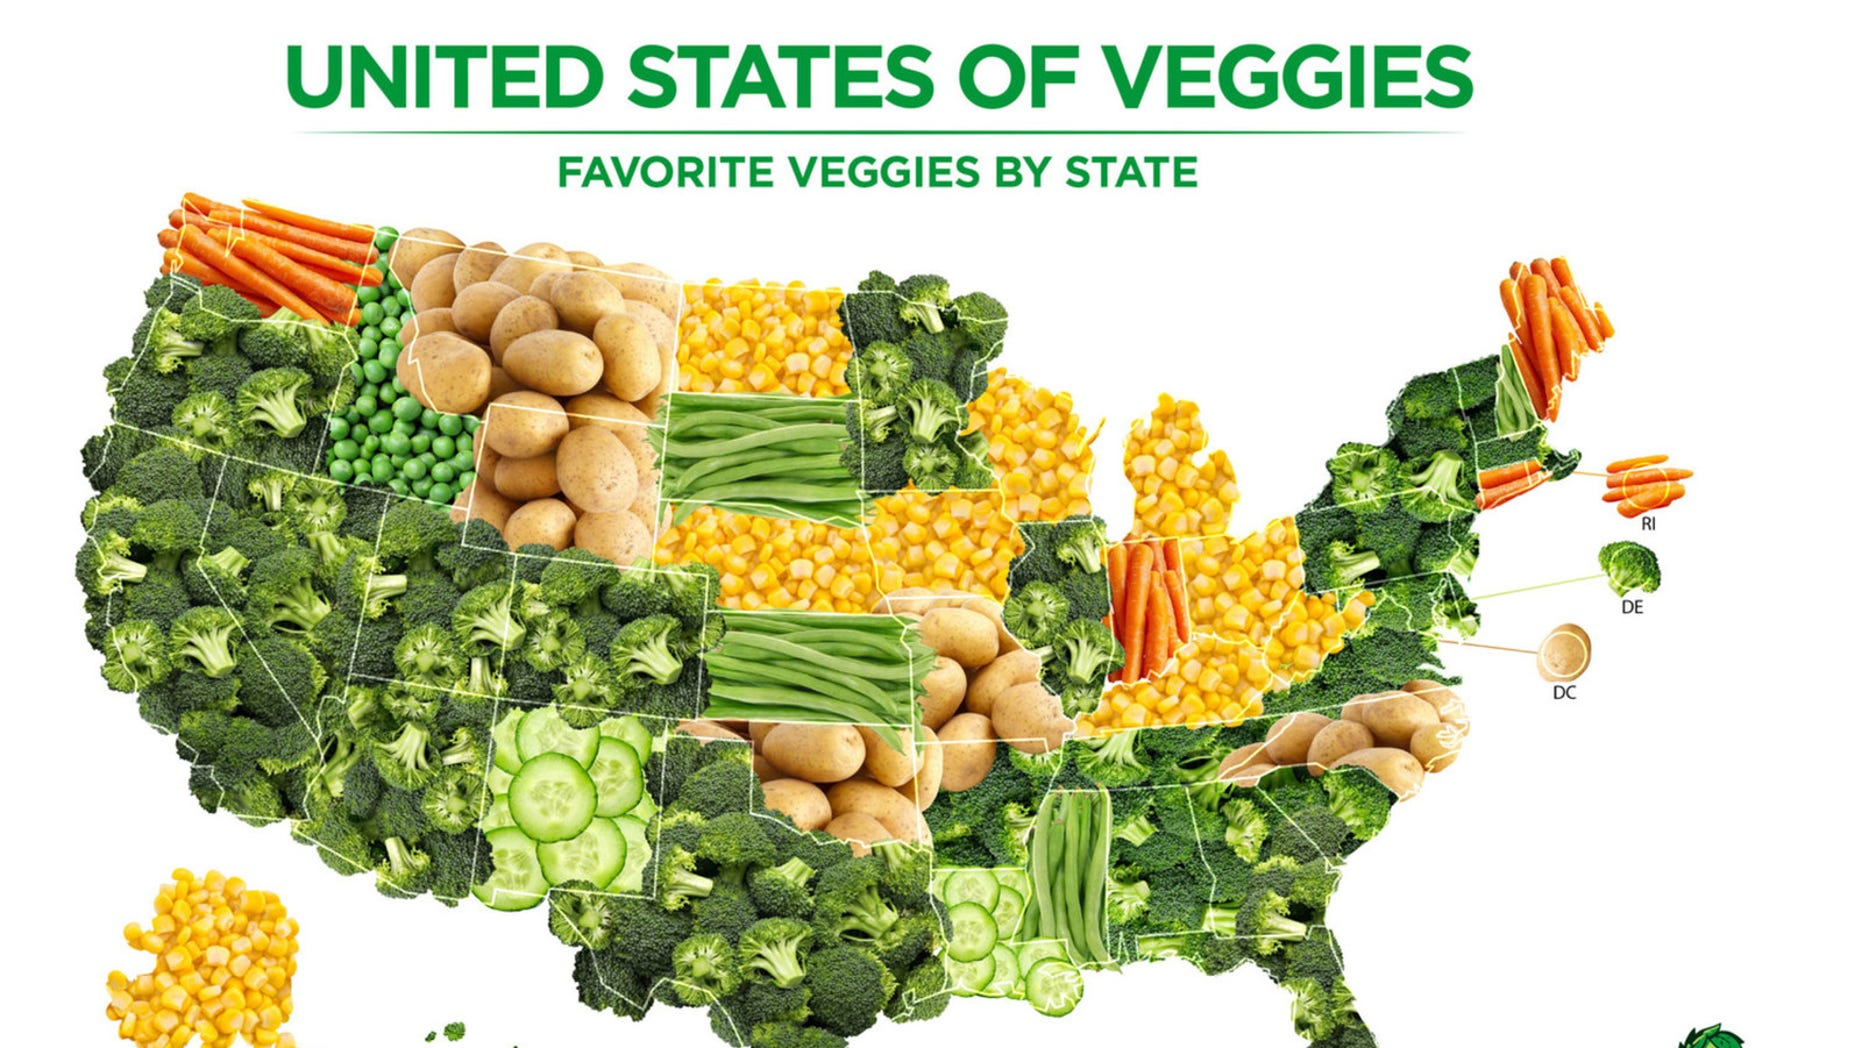 According to Green Giant's nationwide poll, broccoli is the country's favorite vegetable.